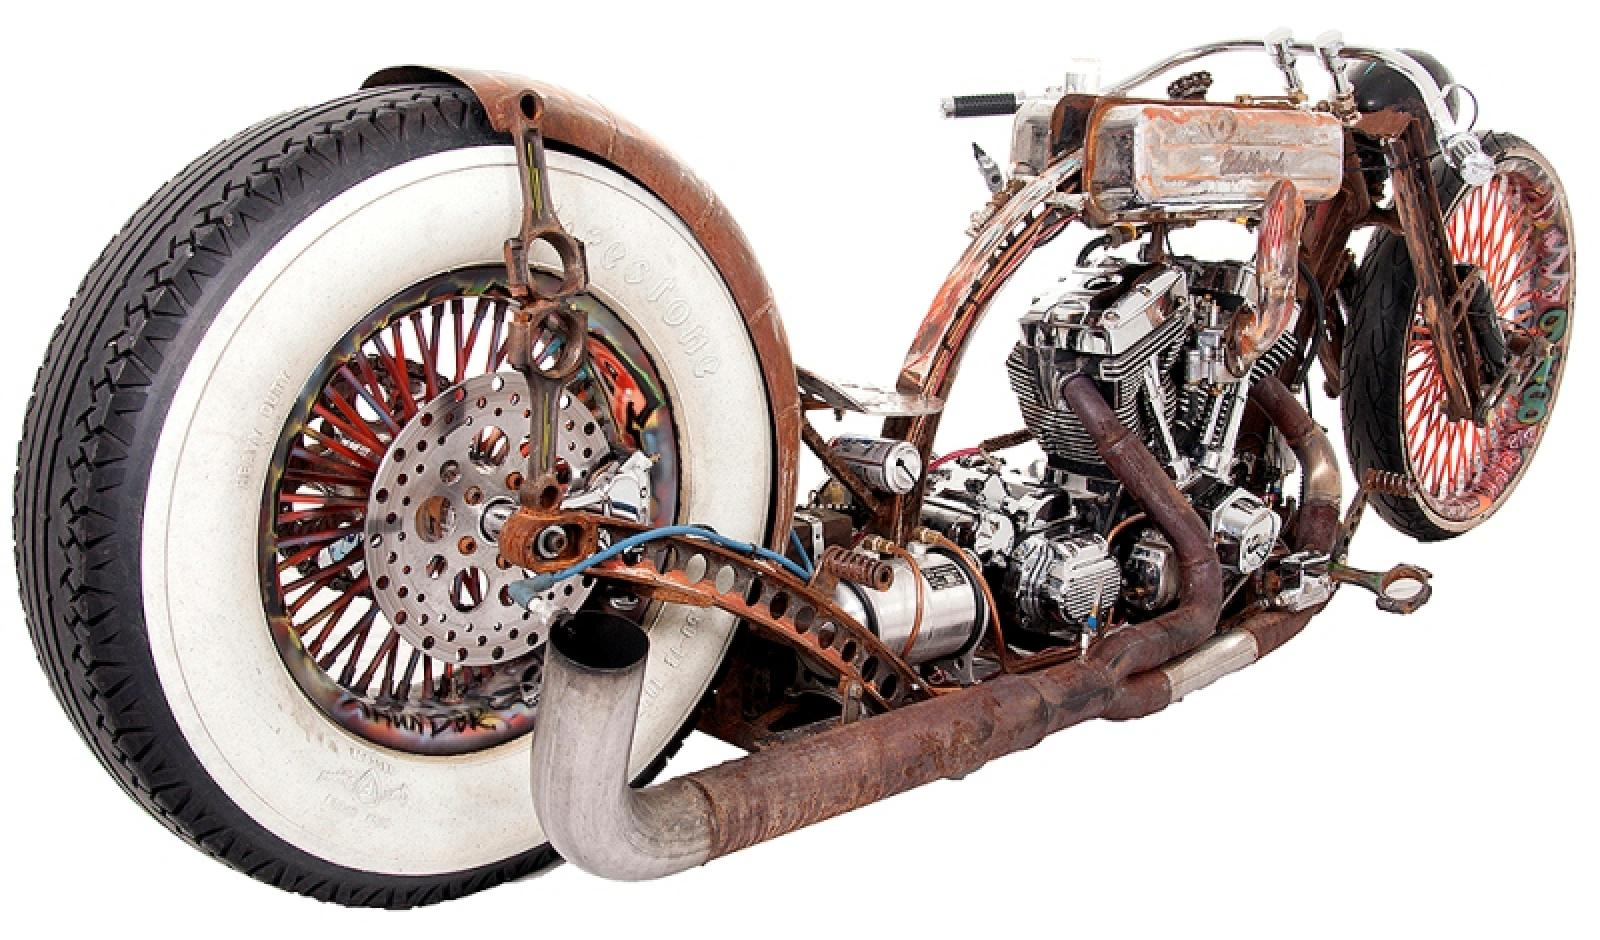 Big Bear Choppers Miss Behavin 100 Carb 2009 images #63751